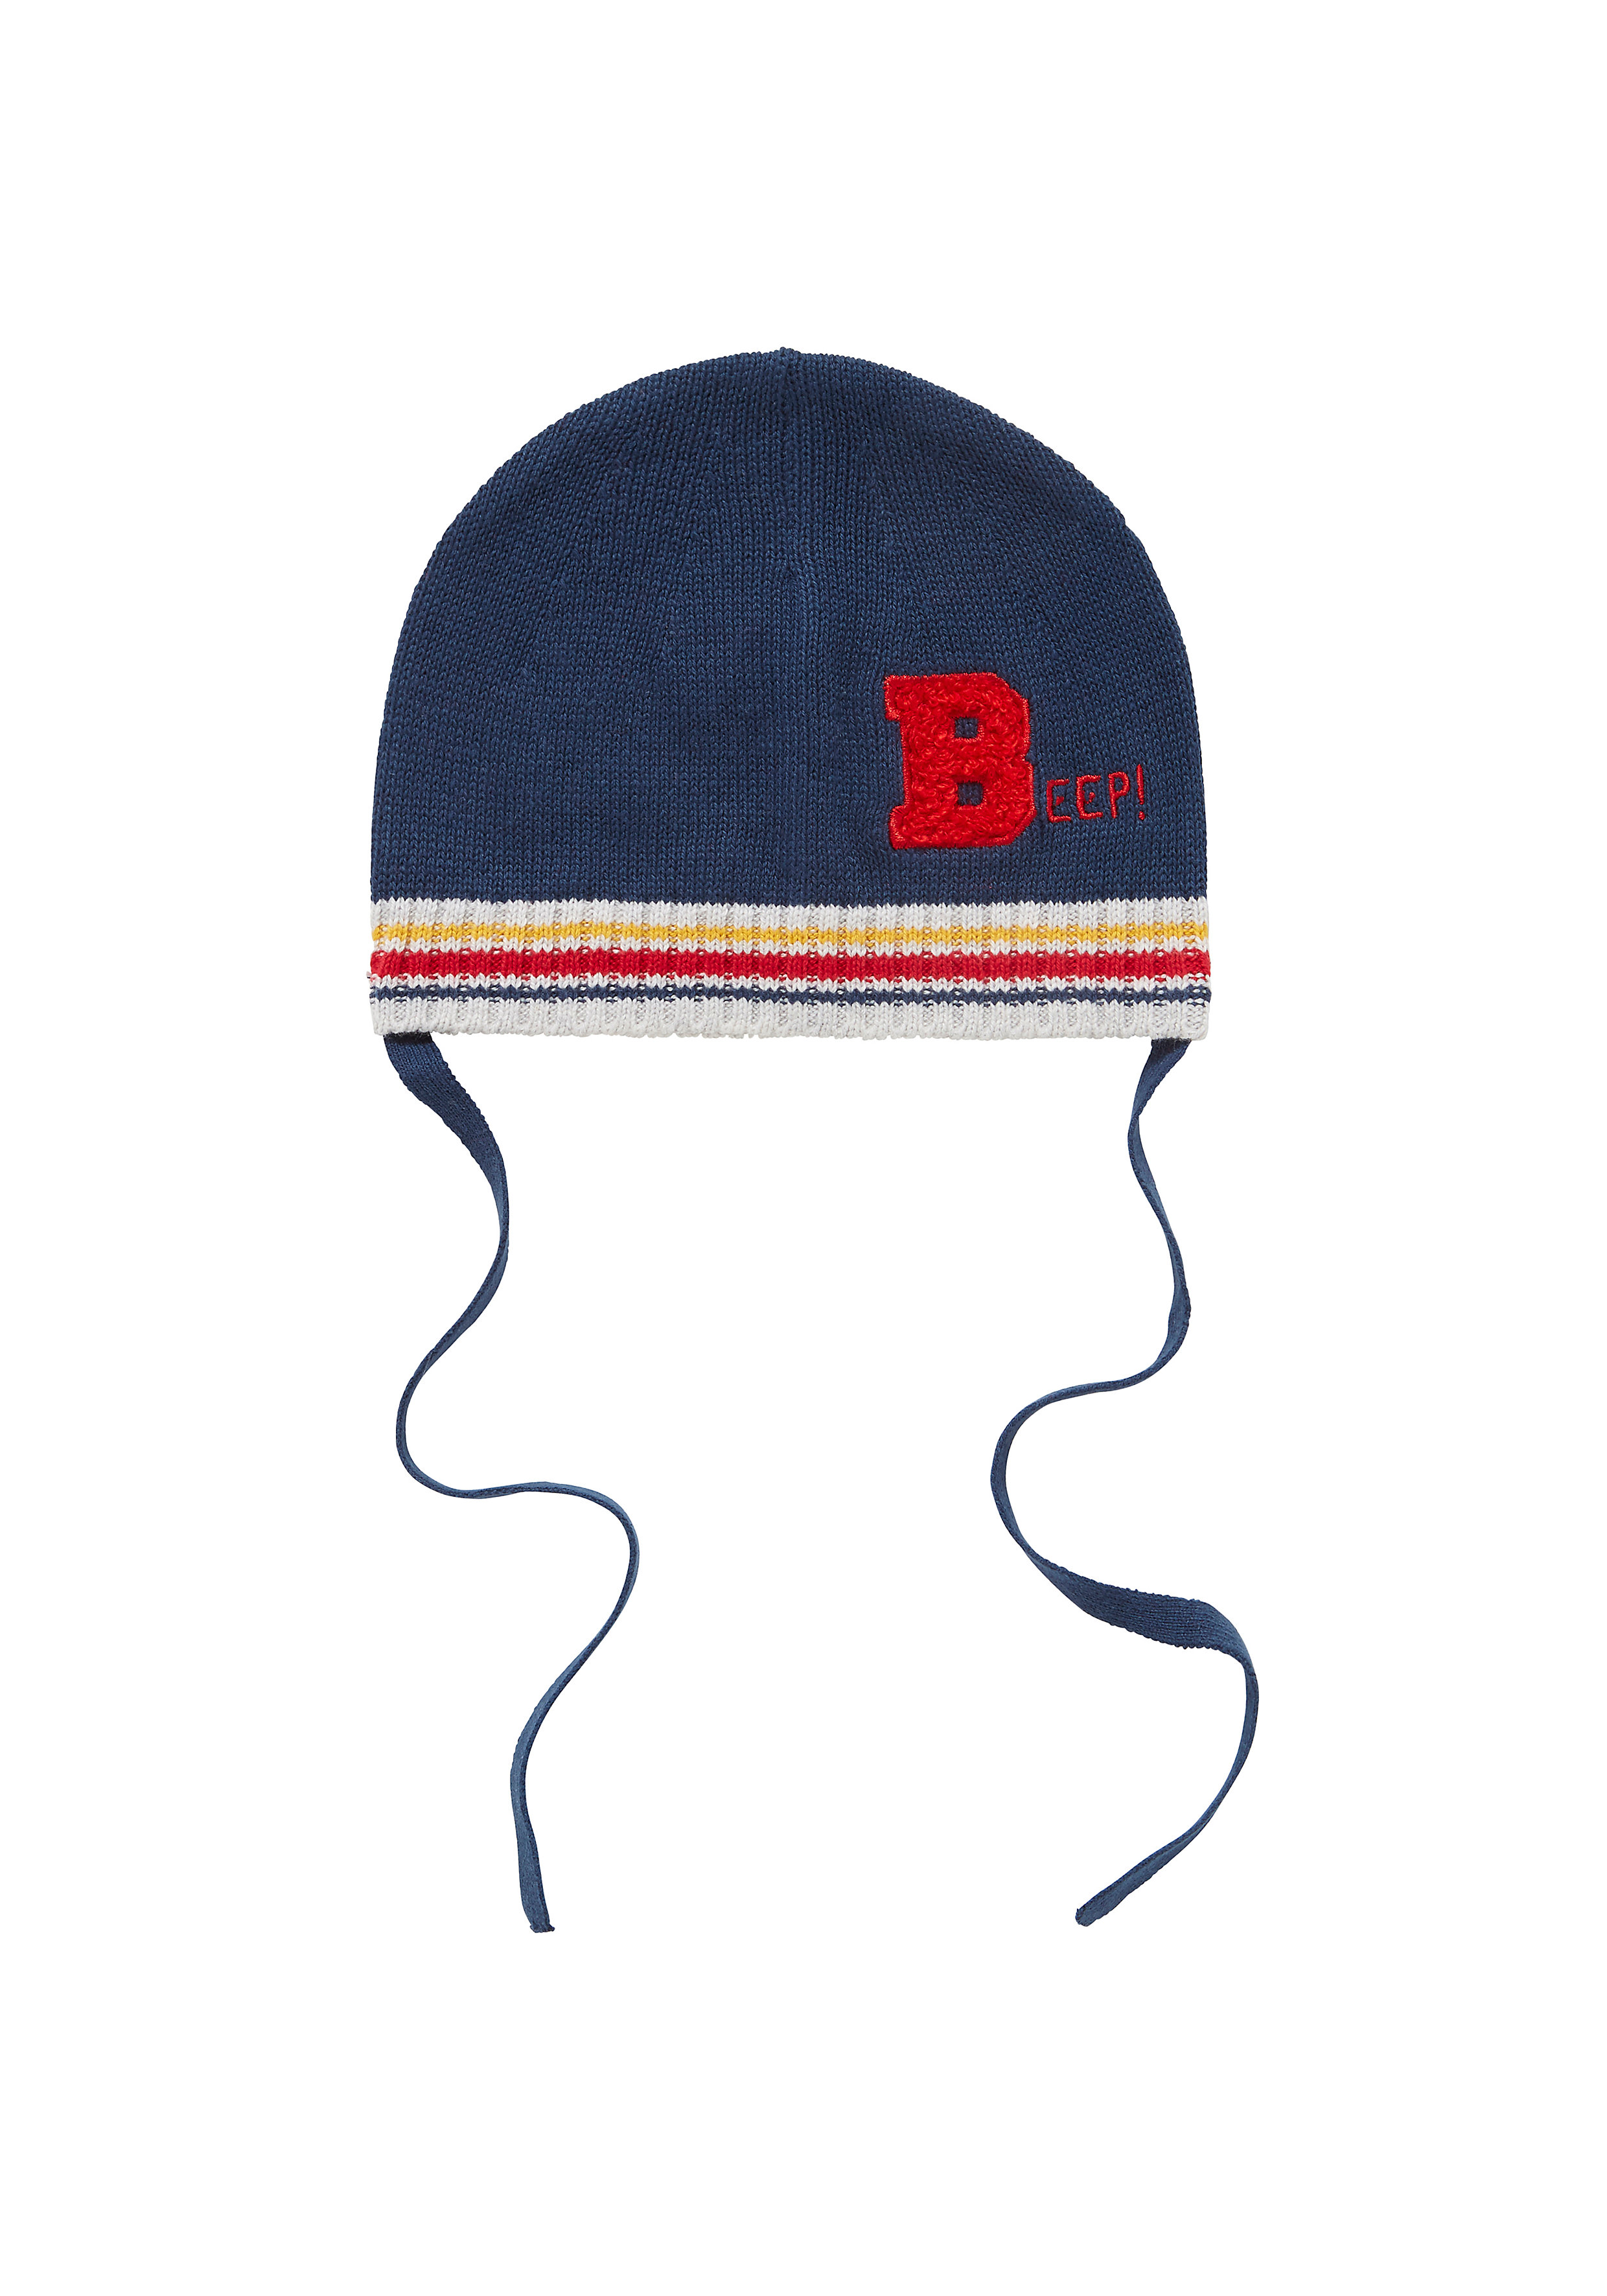 Mothercare   Boys Hat With Ties Embroidered - Navy